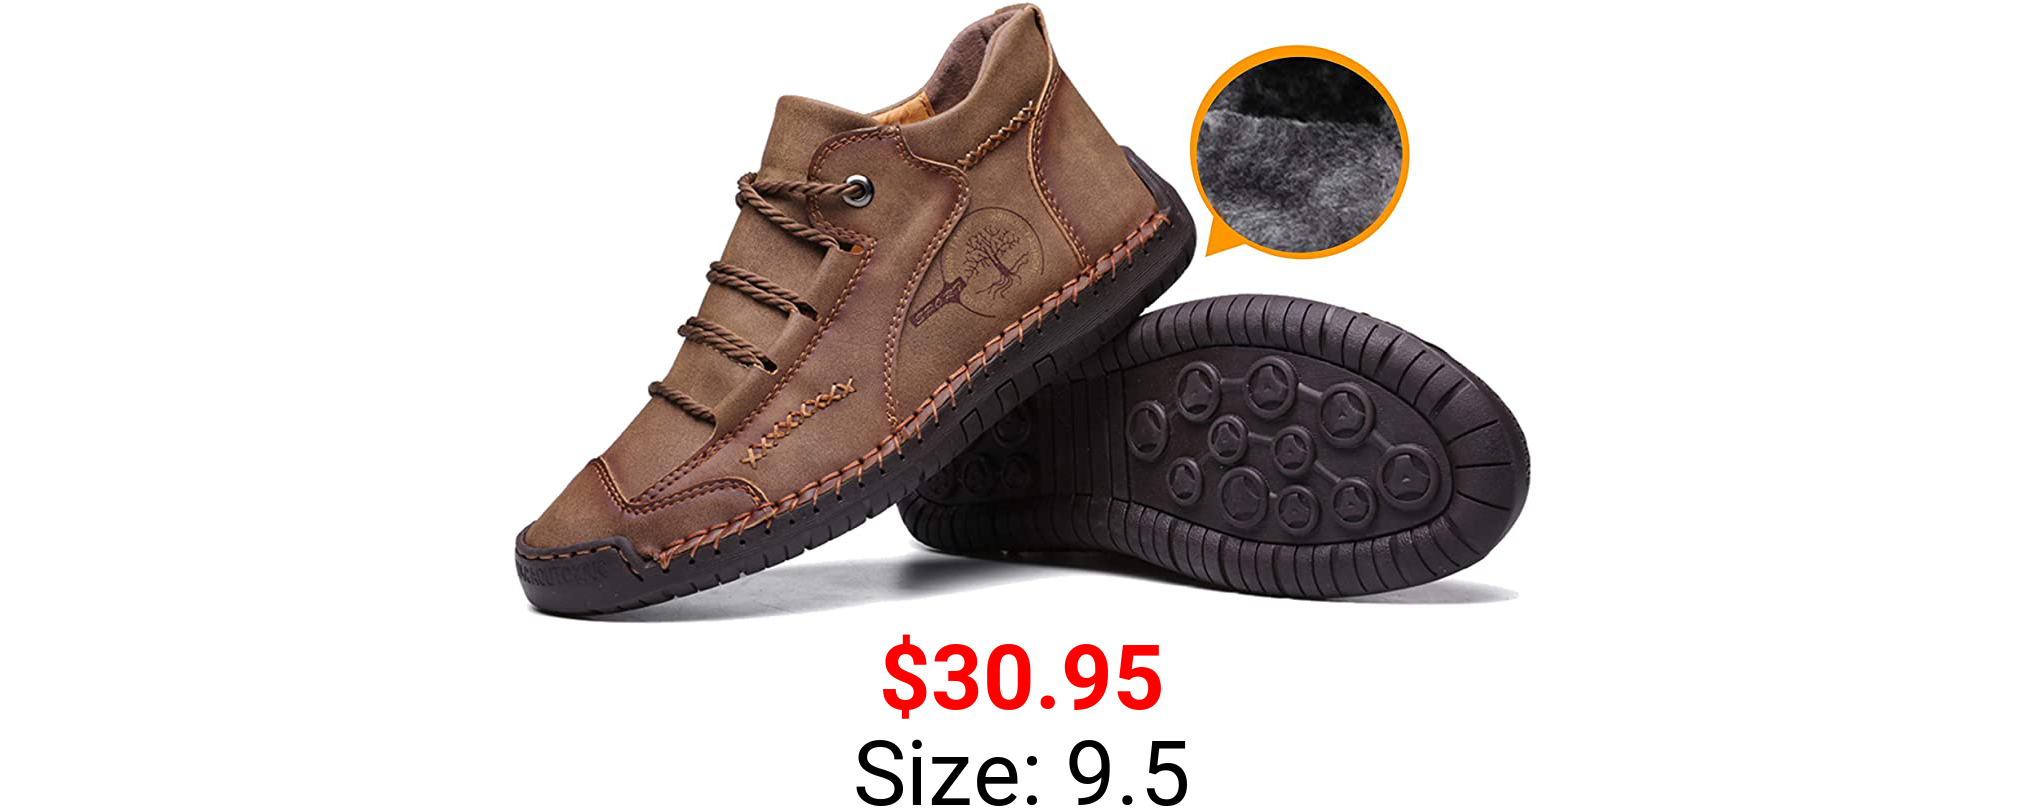 Moodeng Mens Ankle Boots Winter Snow Boots Casual Chukka Boots for Men Anti-Slip Outdoor Driving Shoes Warm Fur Lining Sneaker